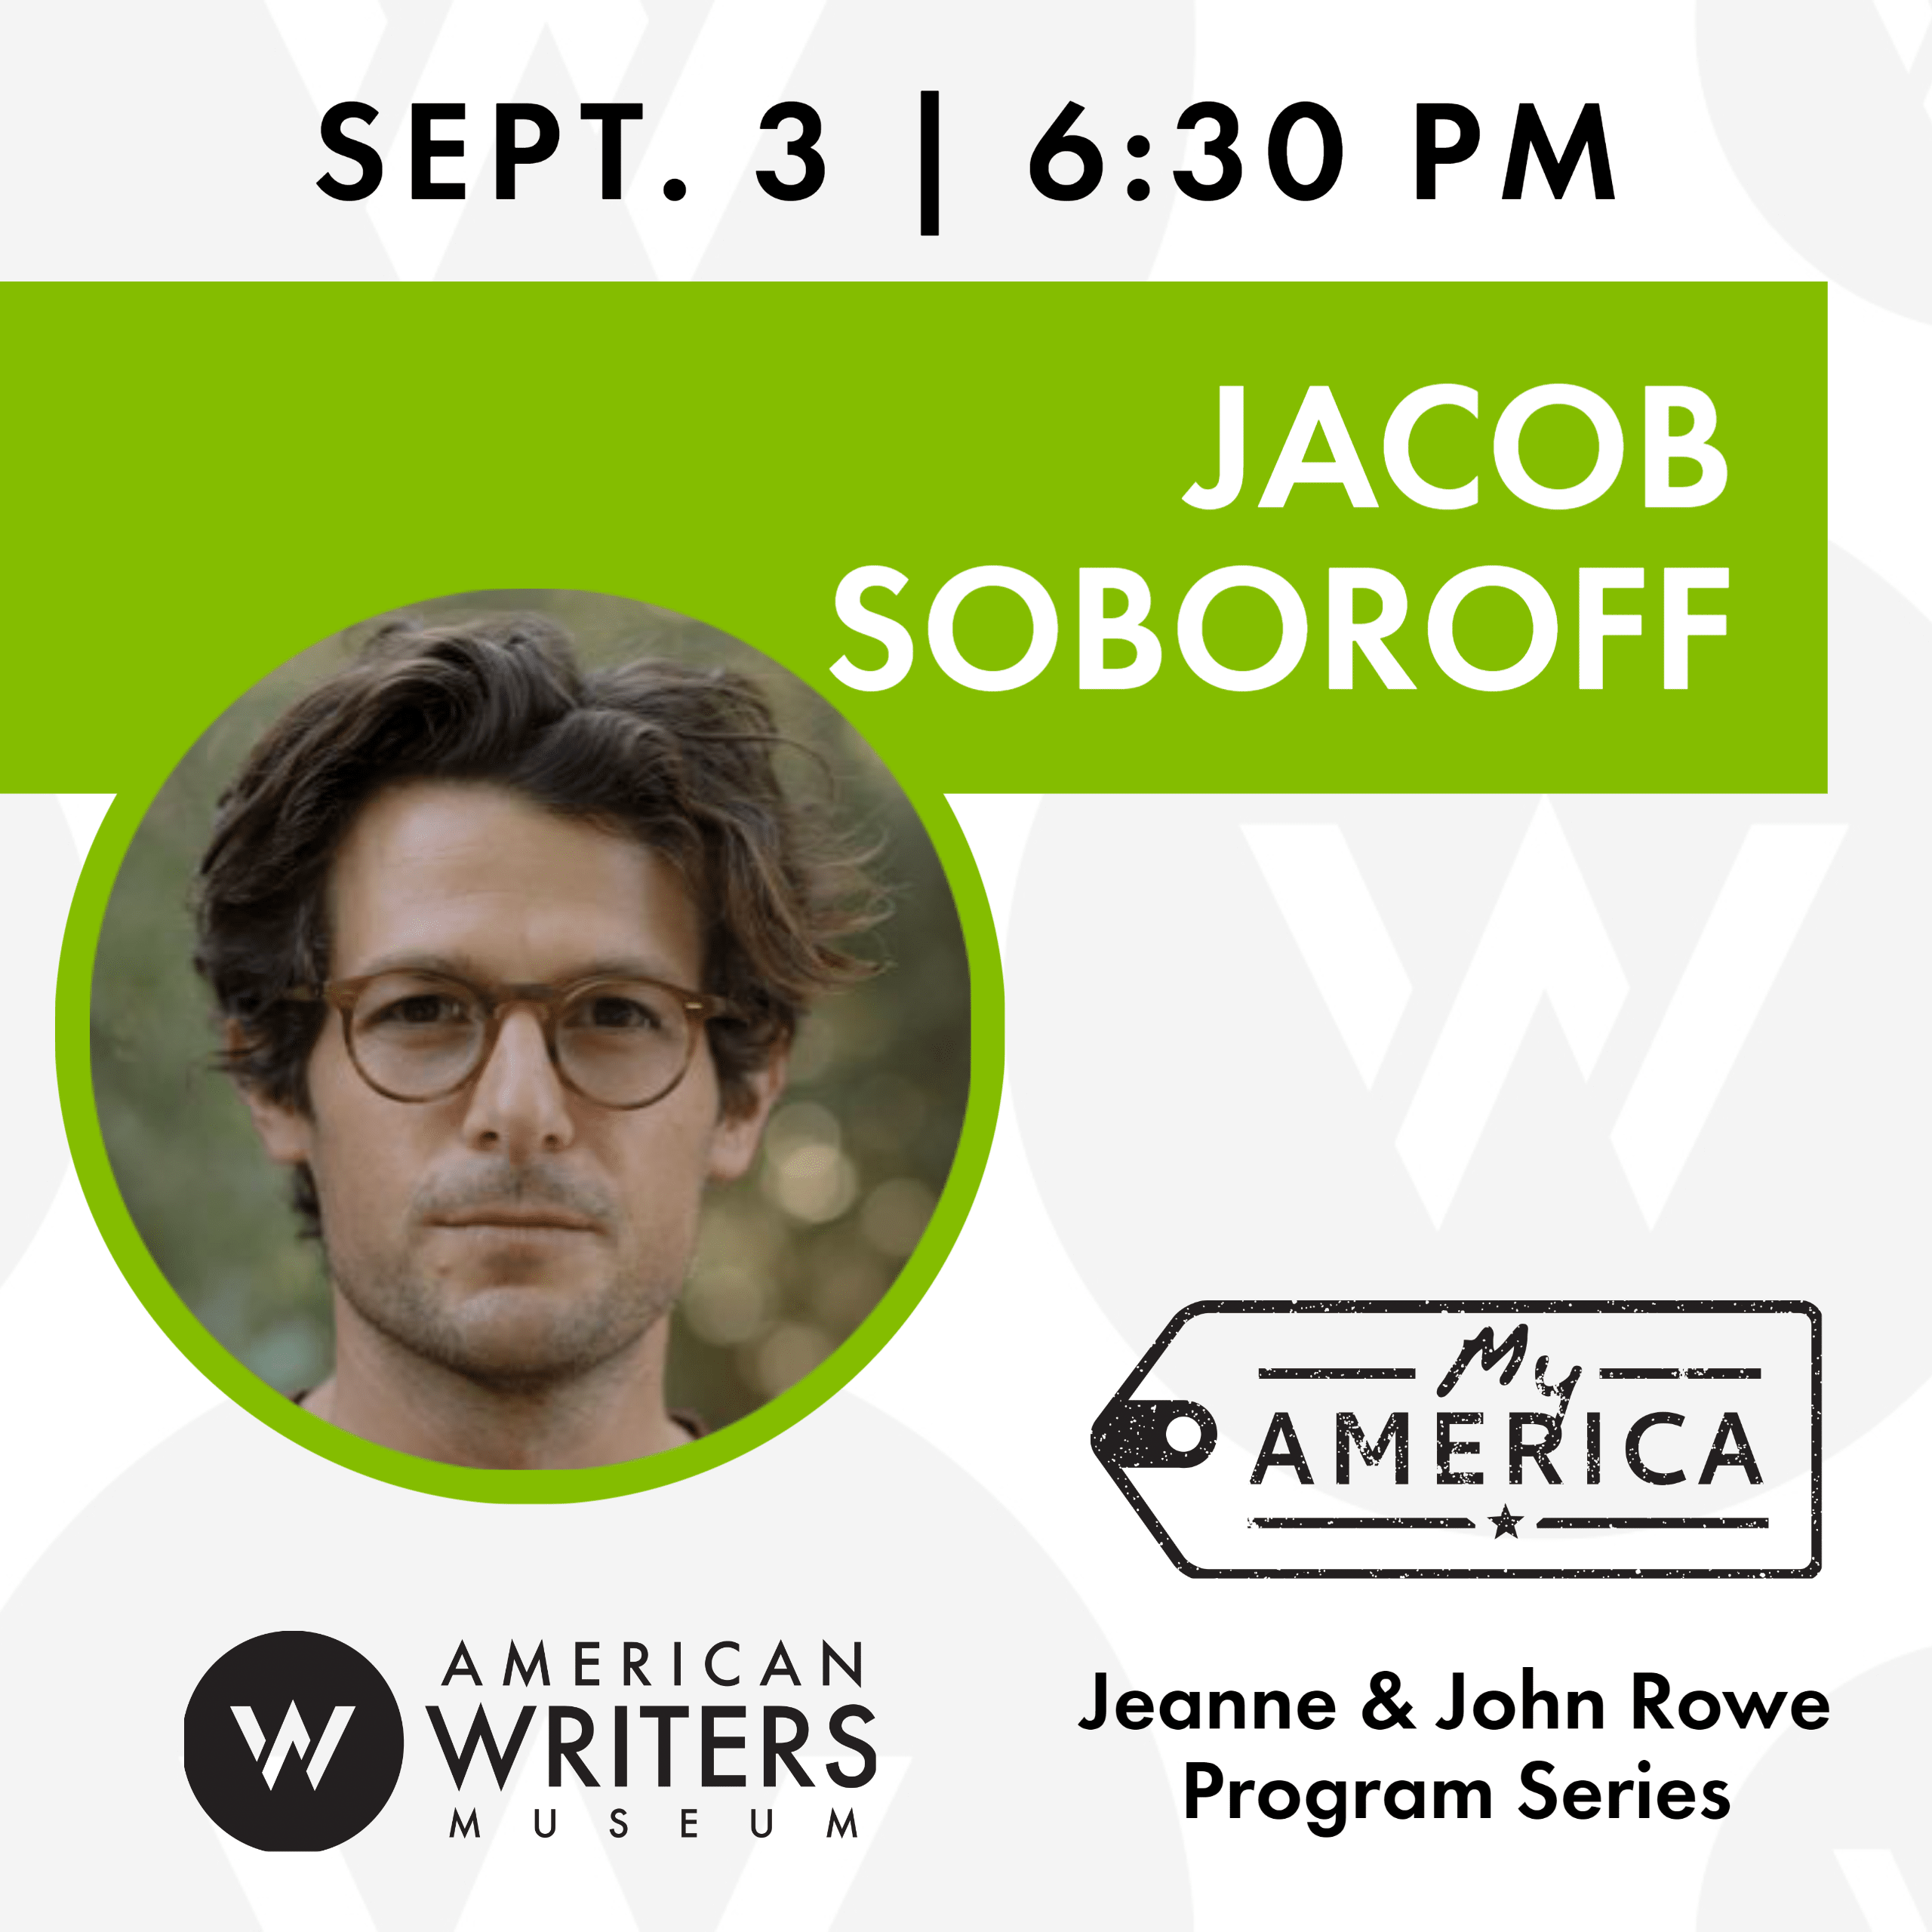 American Writers Museum presents a conversation with NBC correspondent Jacob Soboroff on his new book about the Trump administration's border policies